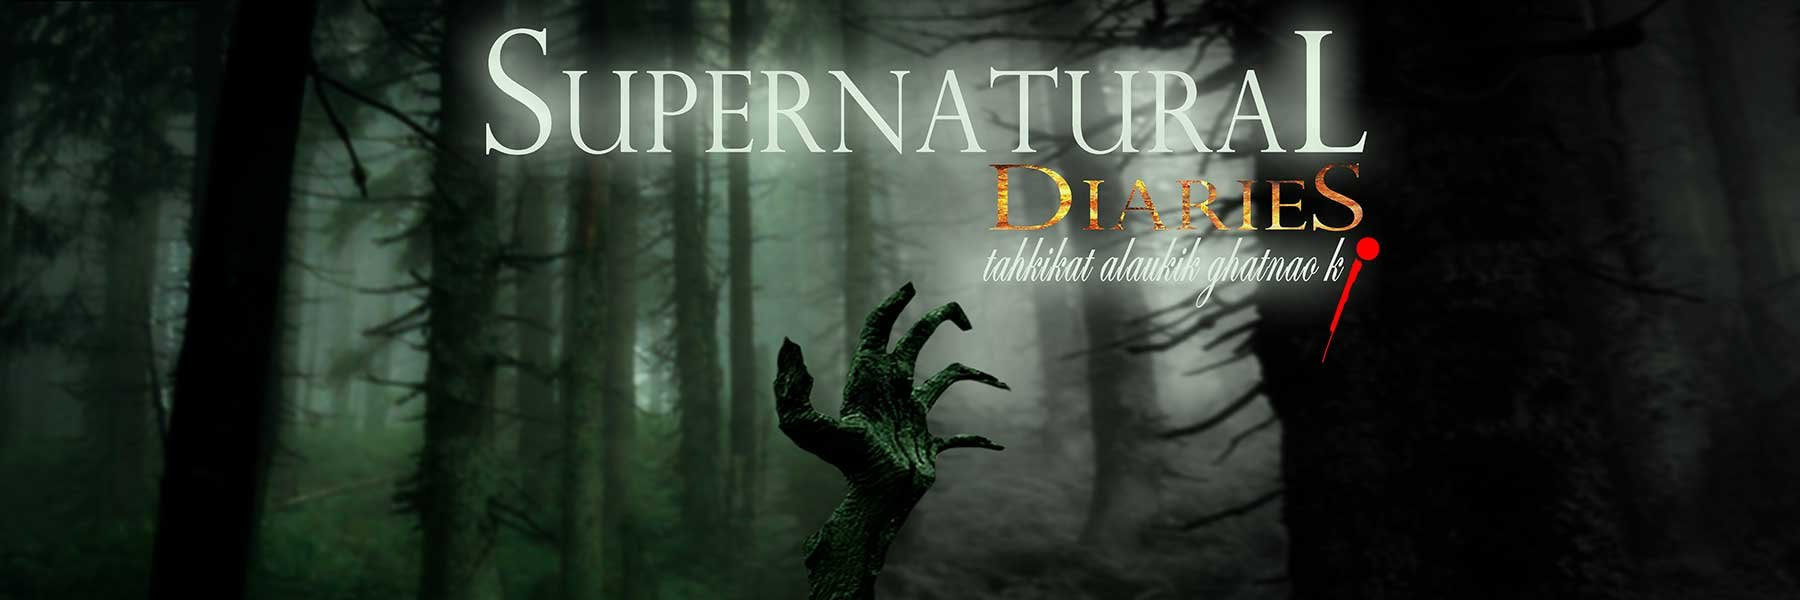 Supernatural Diaries - Only On BongFlix